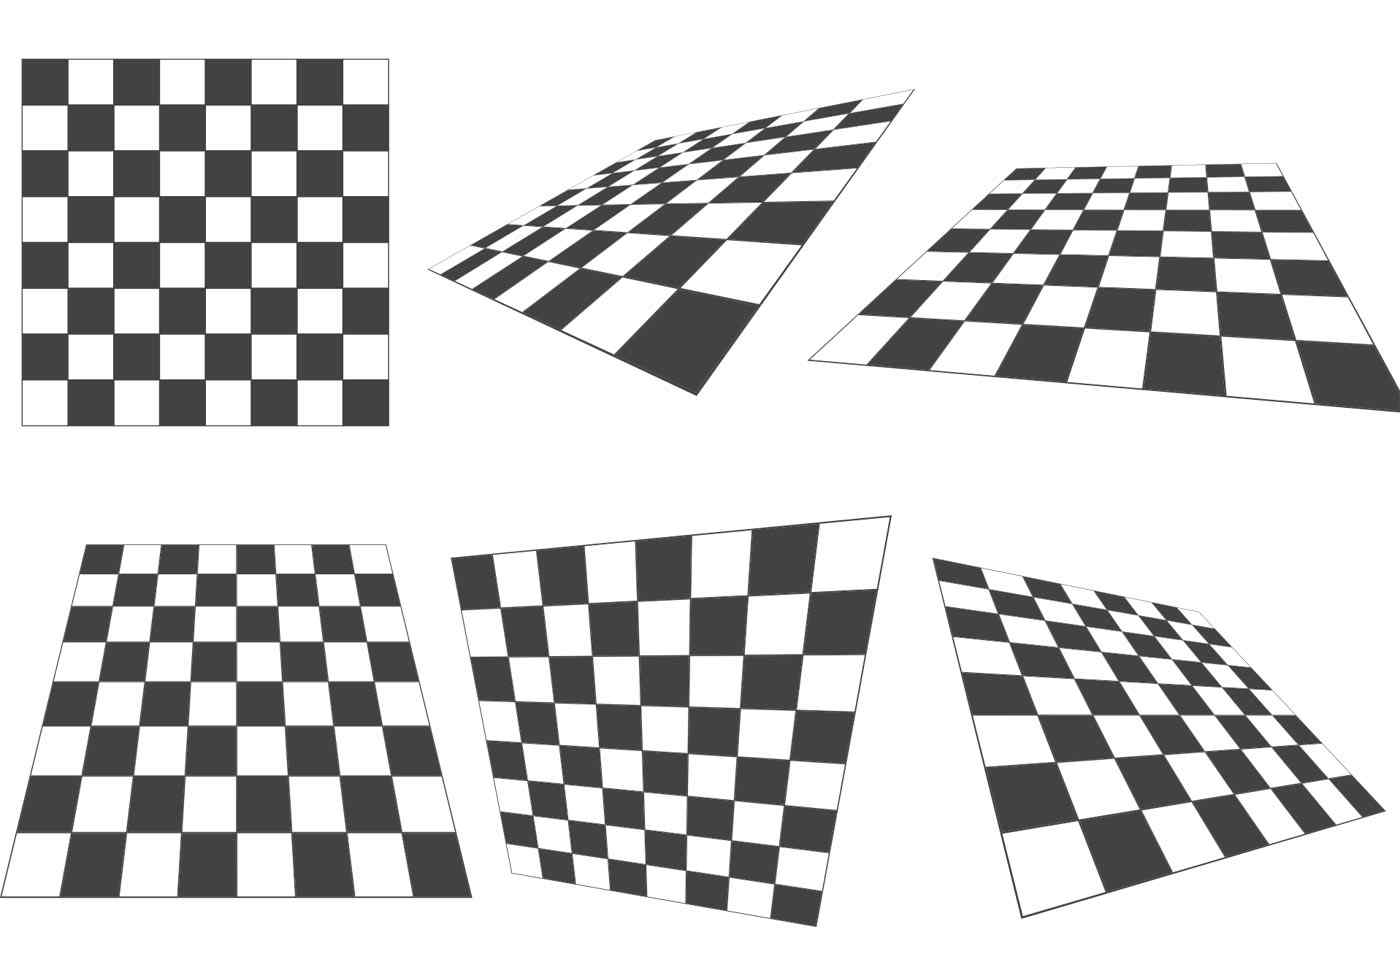 download clipart, clipart checkerboard podvodnici info #31764